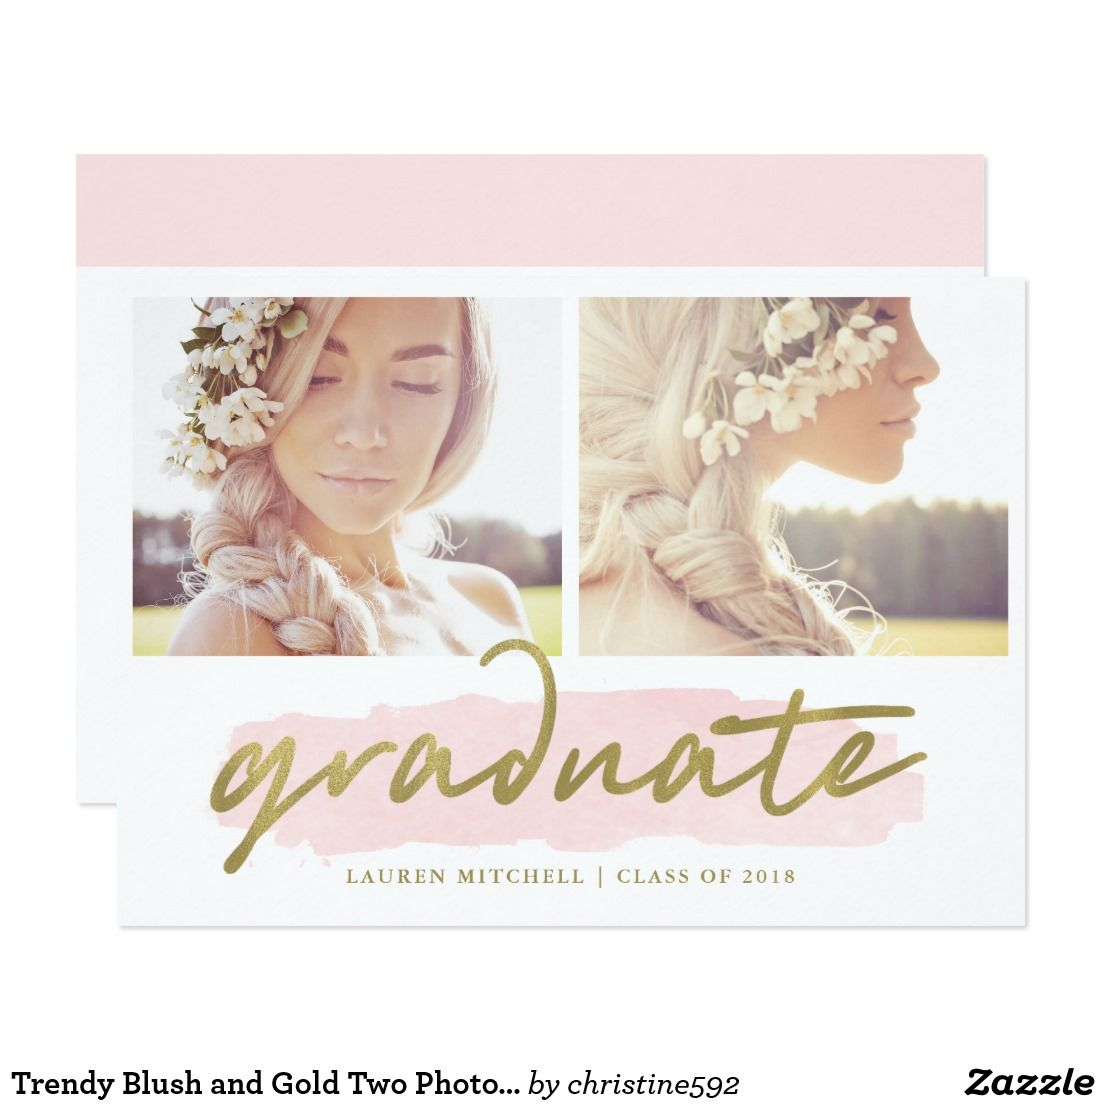 Trendy Blush and Gold Two Photo Graduation Party Card | Grad invites ...